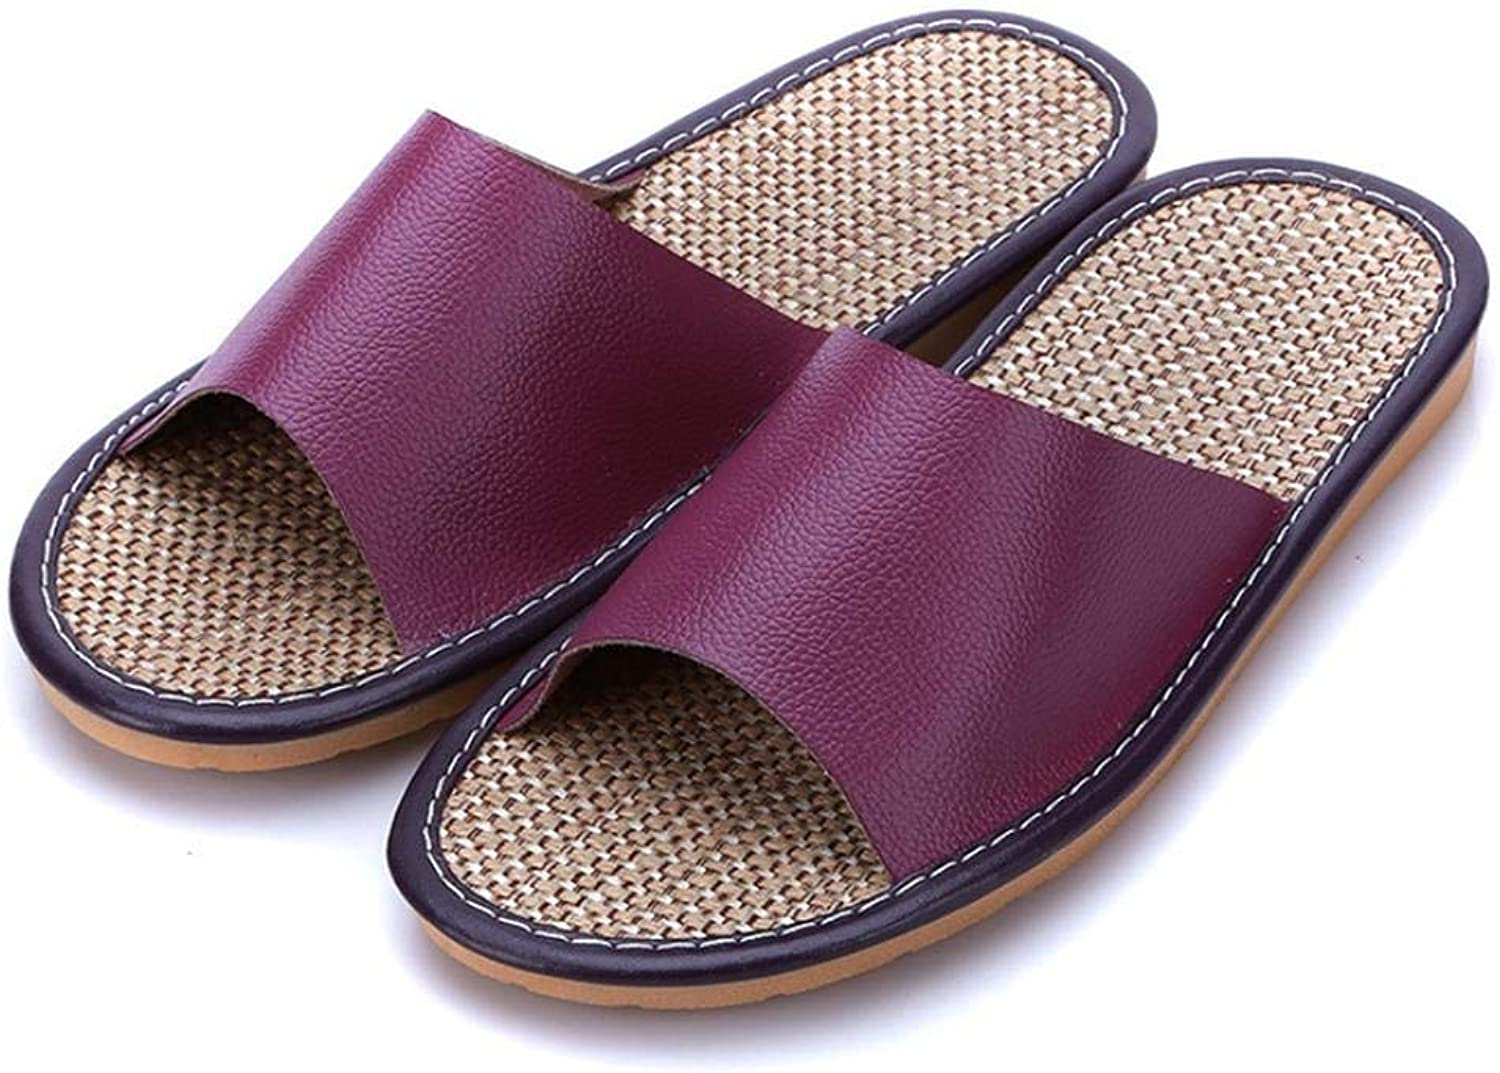 JaHGDU Ladies Home Interior Leather Tendon End of Casual Slippers Small Soild color Personality Fashion for Women Purple